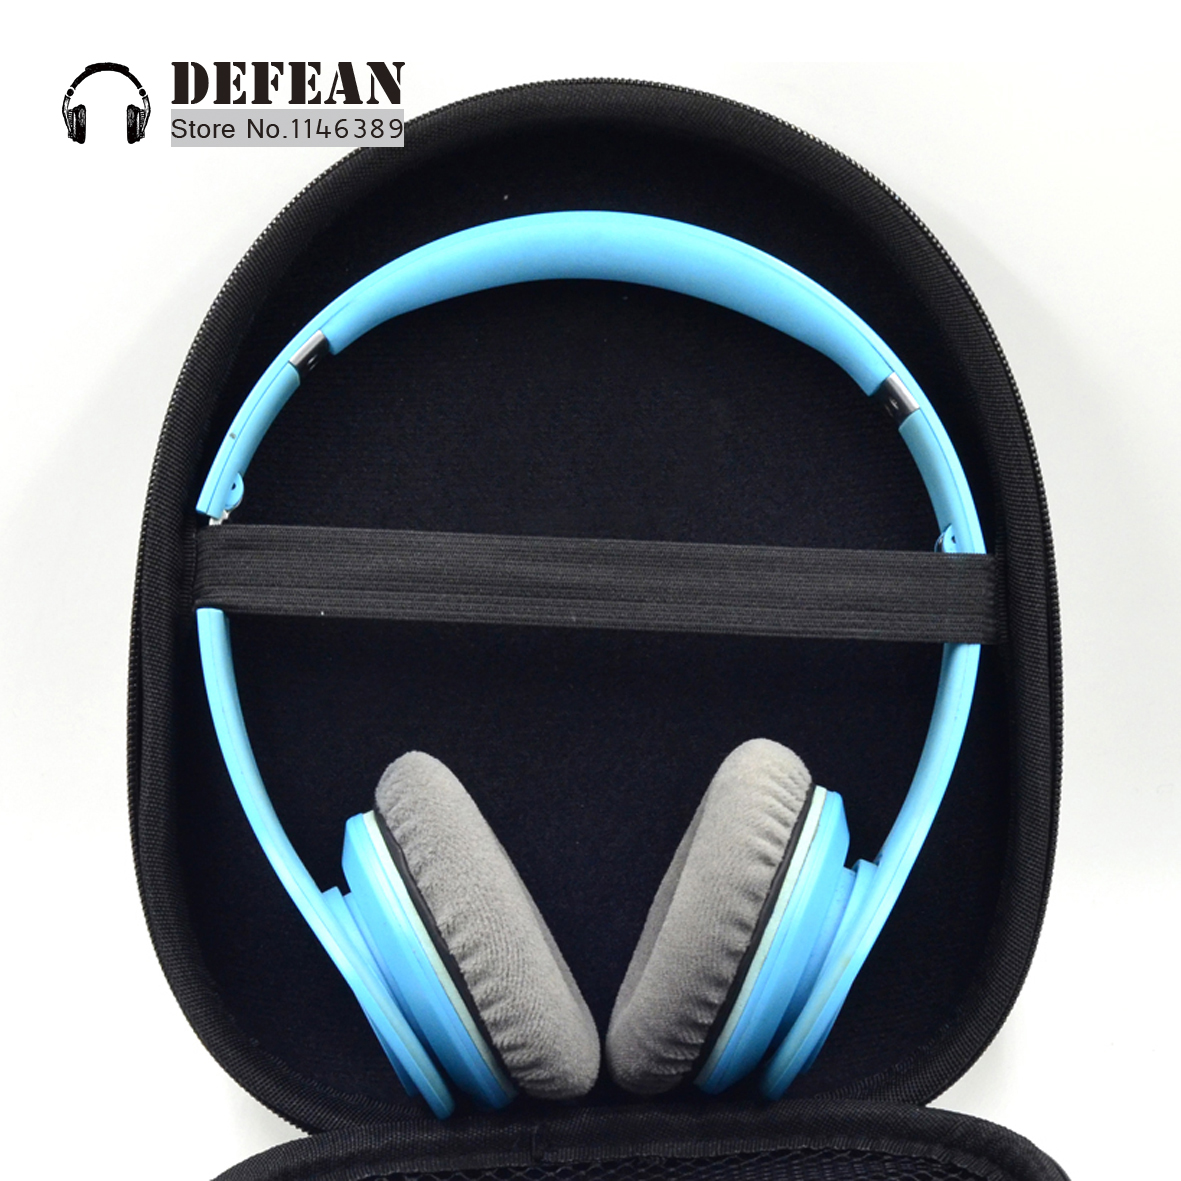 New black Headphone Case storage Pouch Bag For P3 P5 HI-FI HeadphonesFree shipping alistore